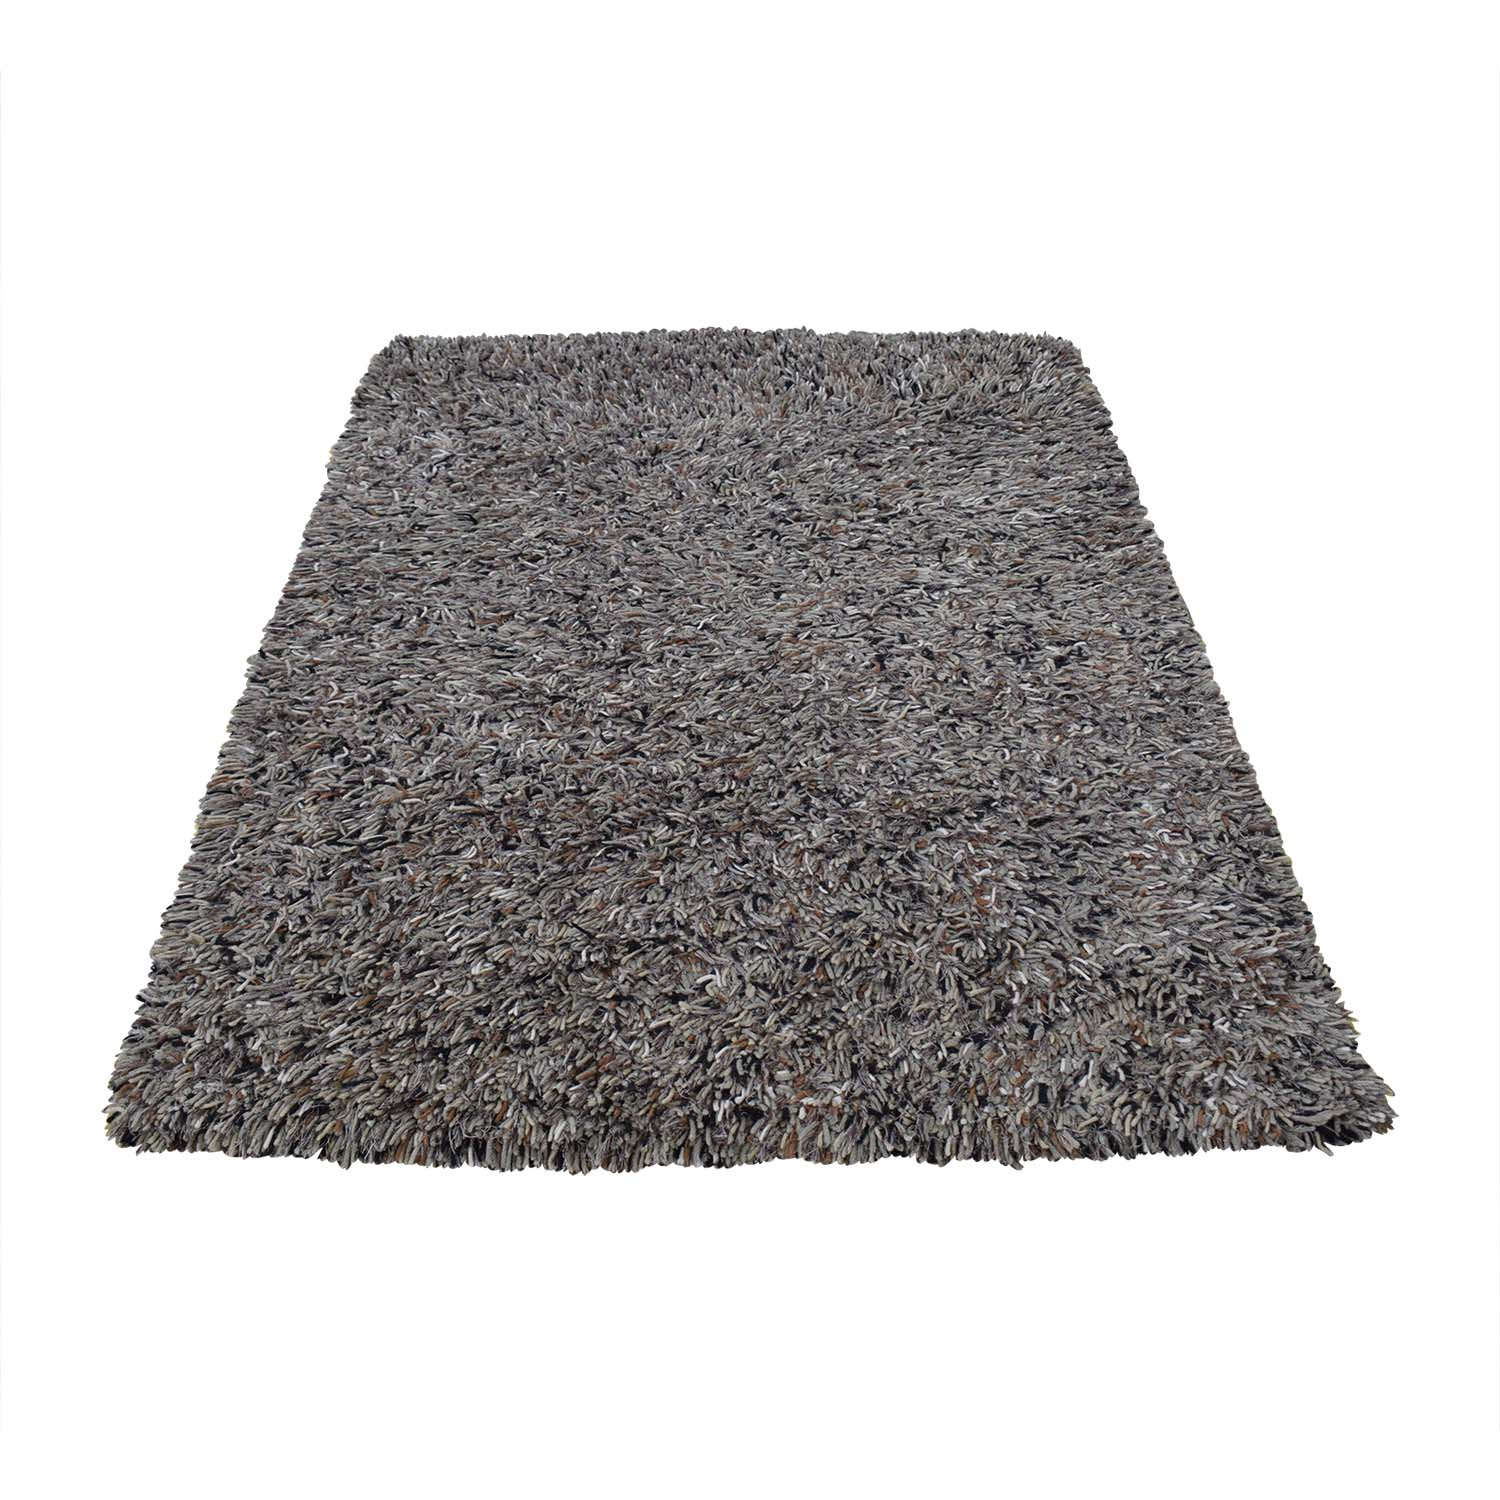 shop Linie Design Betona Shag Rug Linie Design Decor